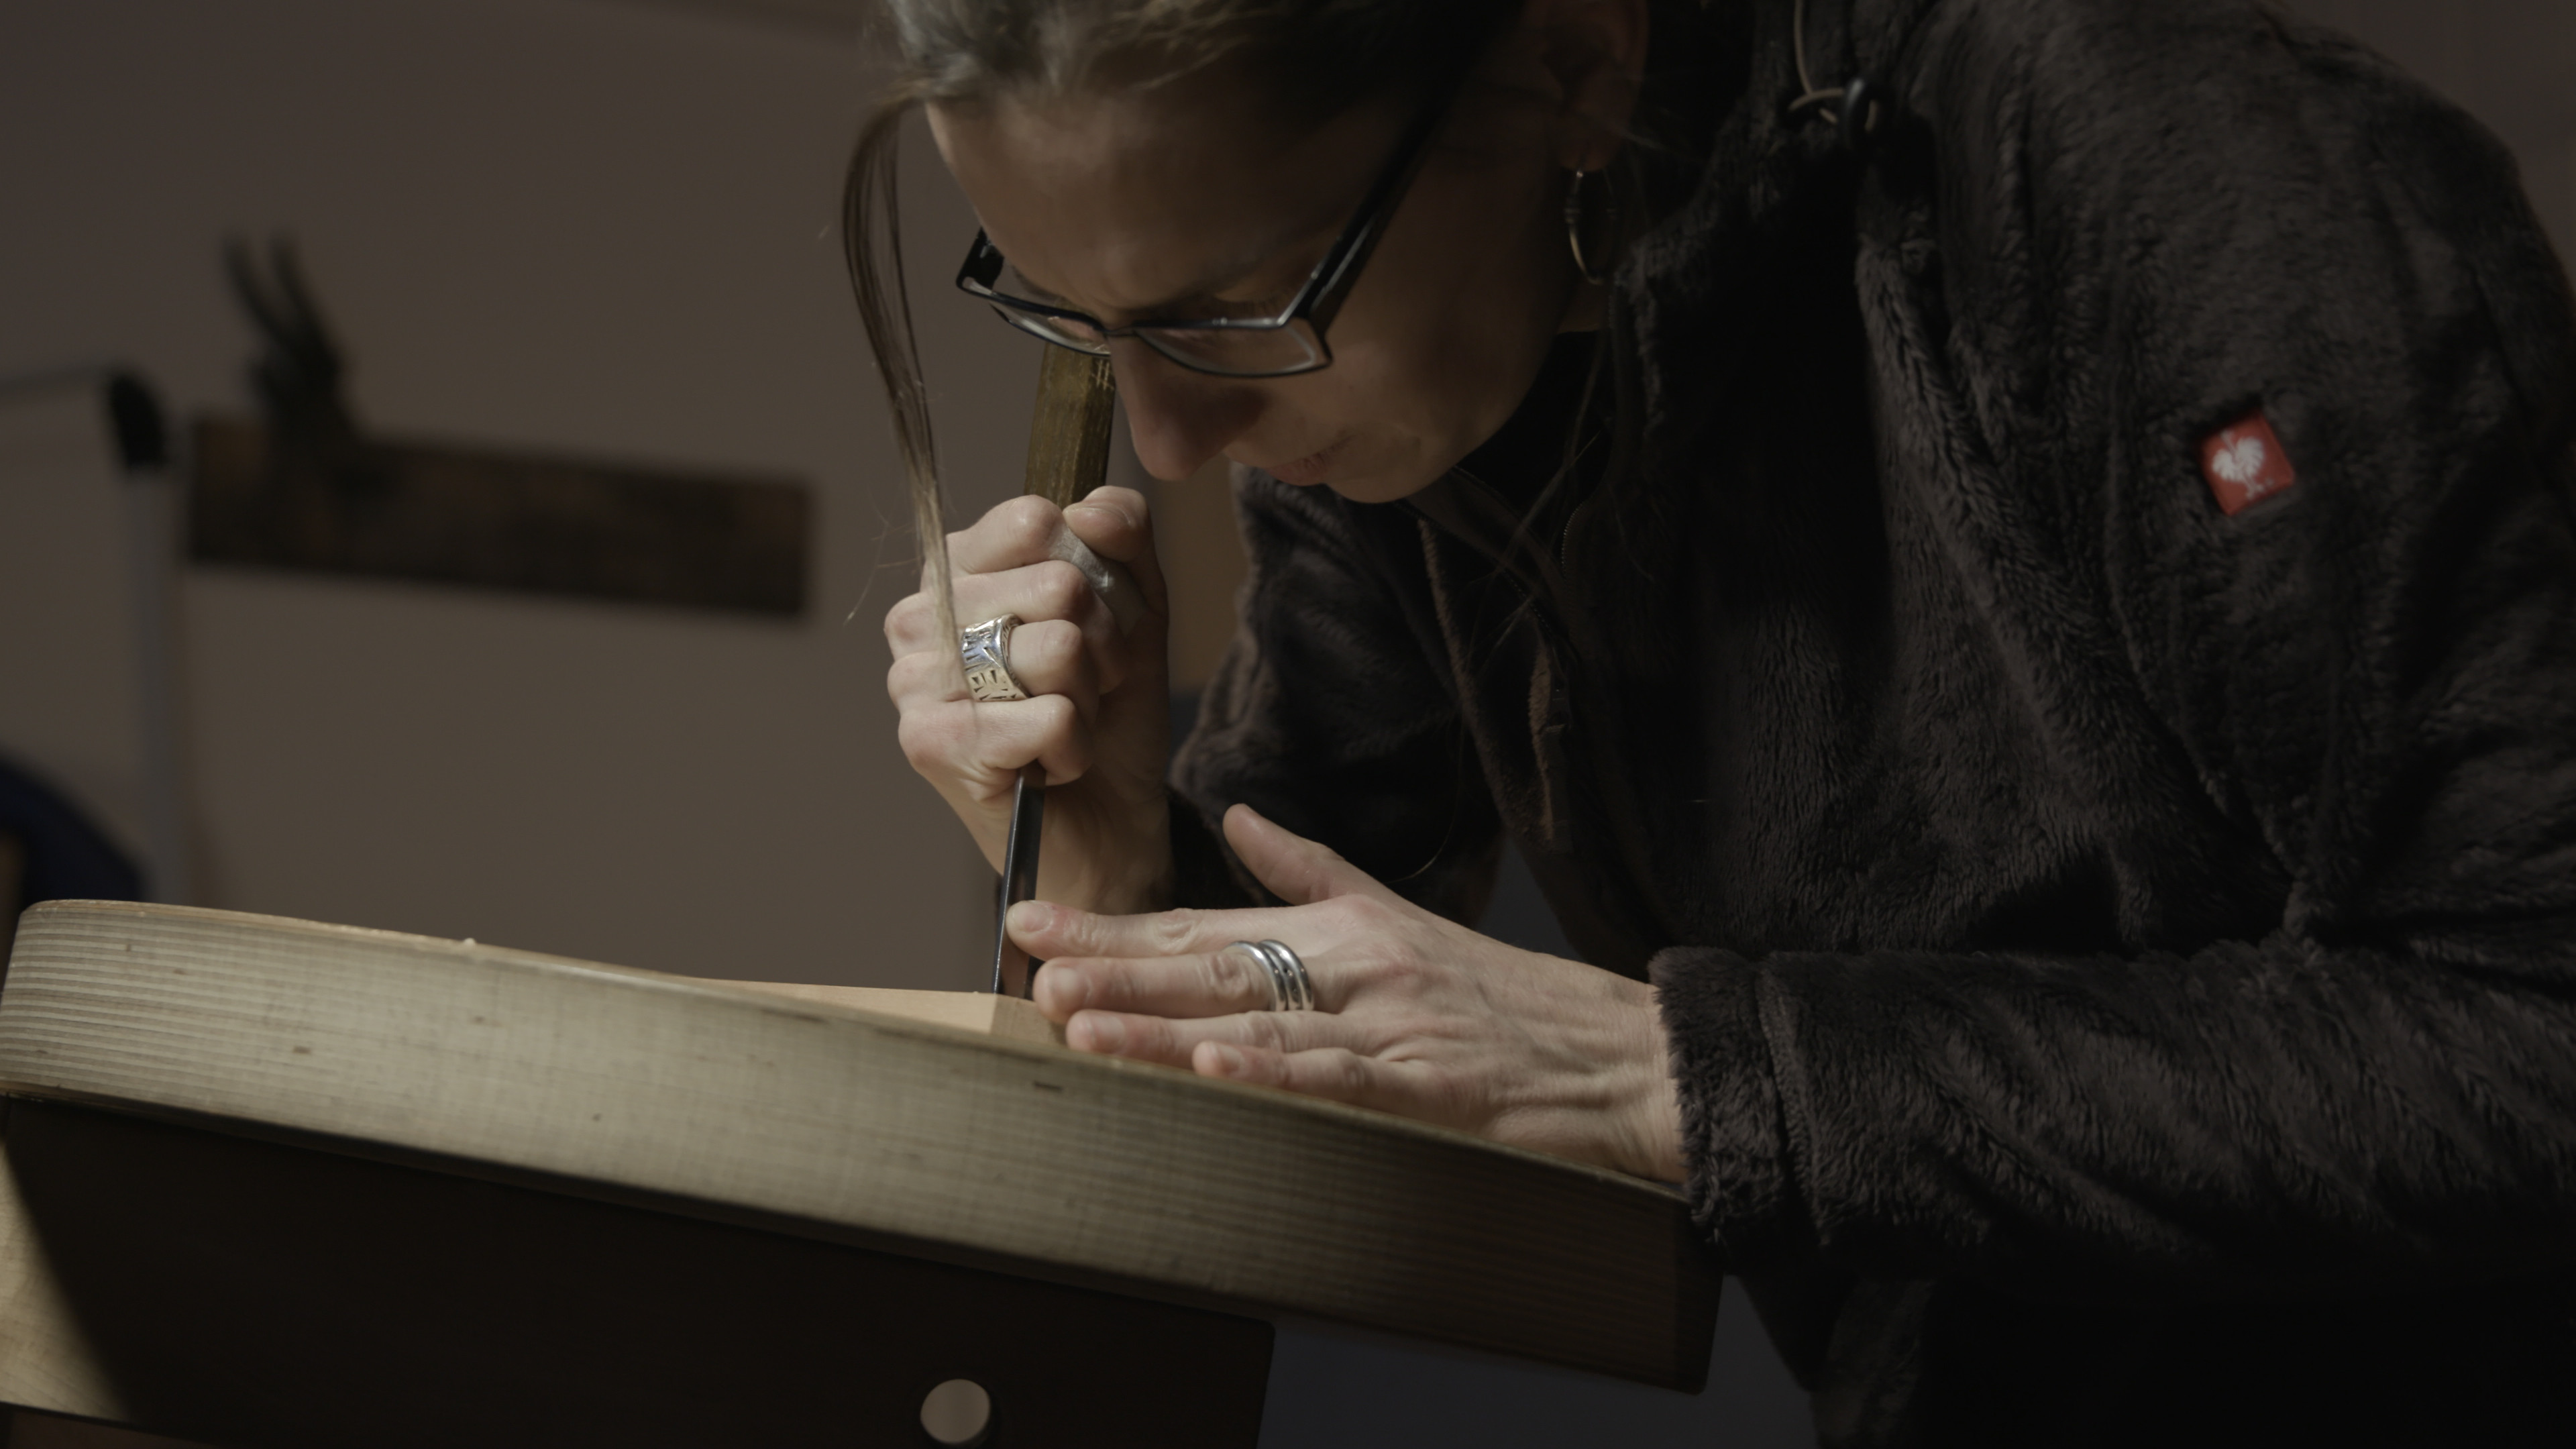 Franziska Frütiger is an independent woodcarver